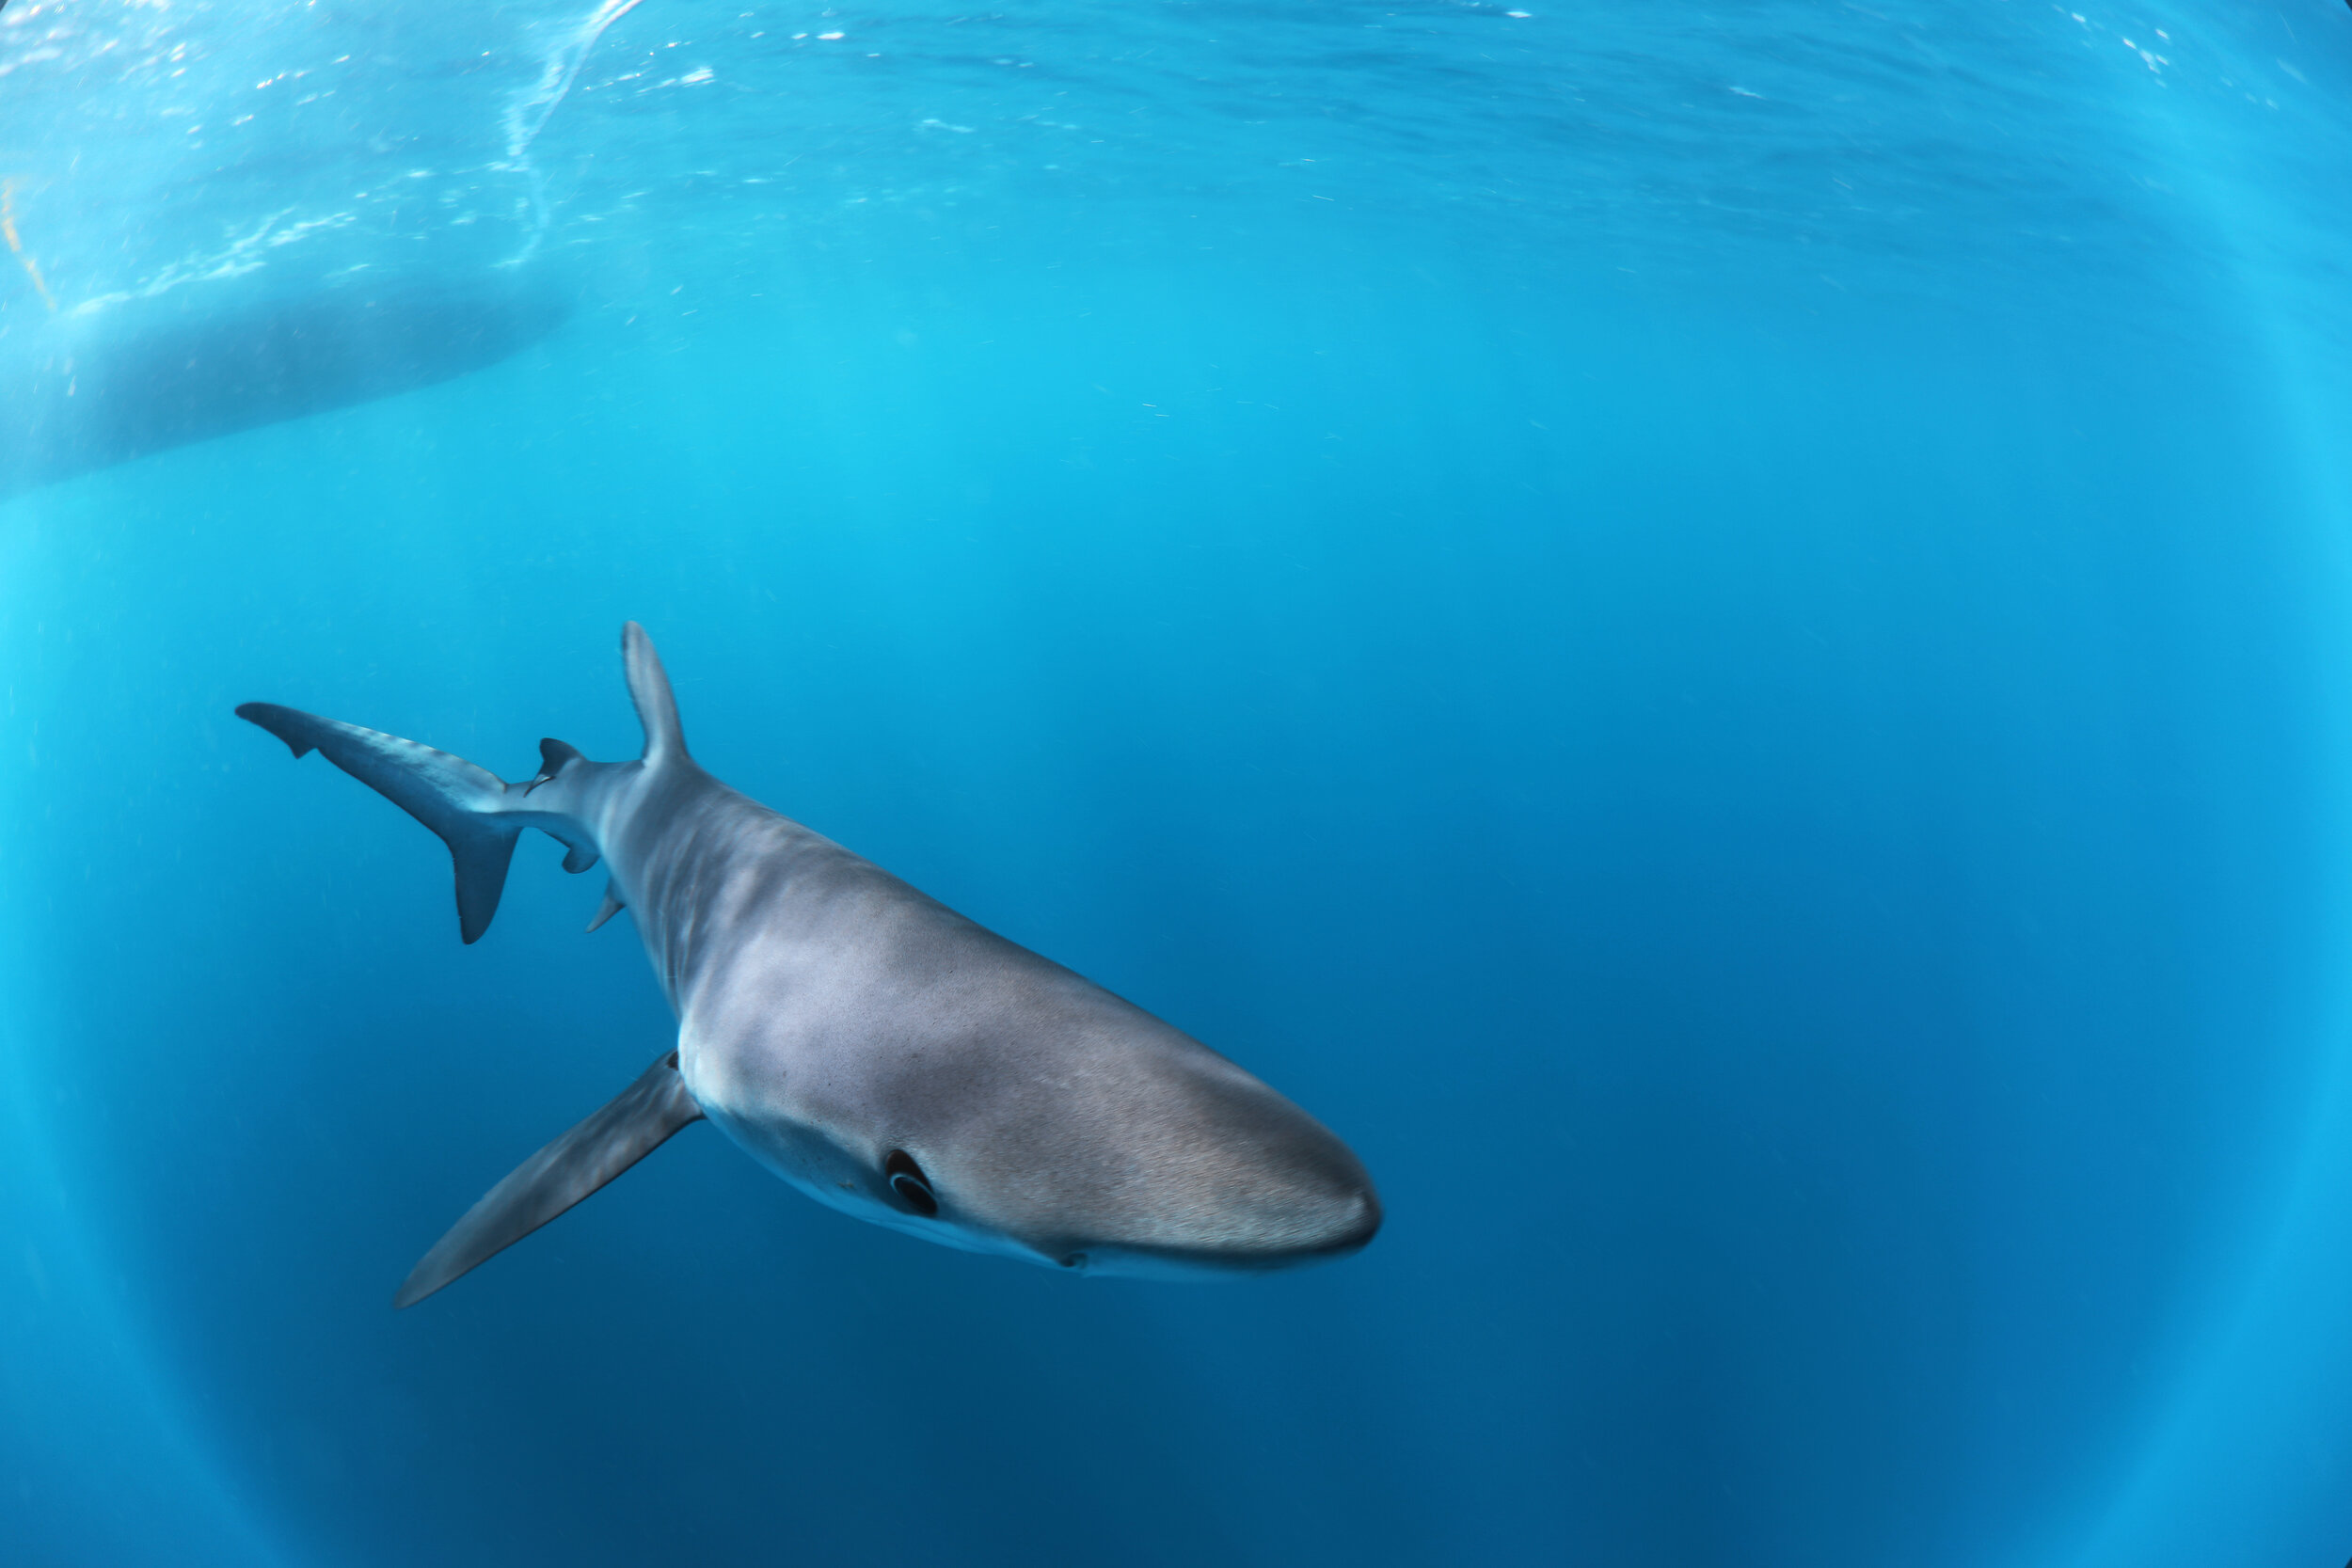 Blue Shark - Shark - Sharks - The Silent Hunter Group - Discovery Channel - Shark Week -  Silent Hunter - Tristan Guttridge - Annie Guttridge - Shark Diving .jpg